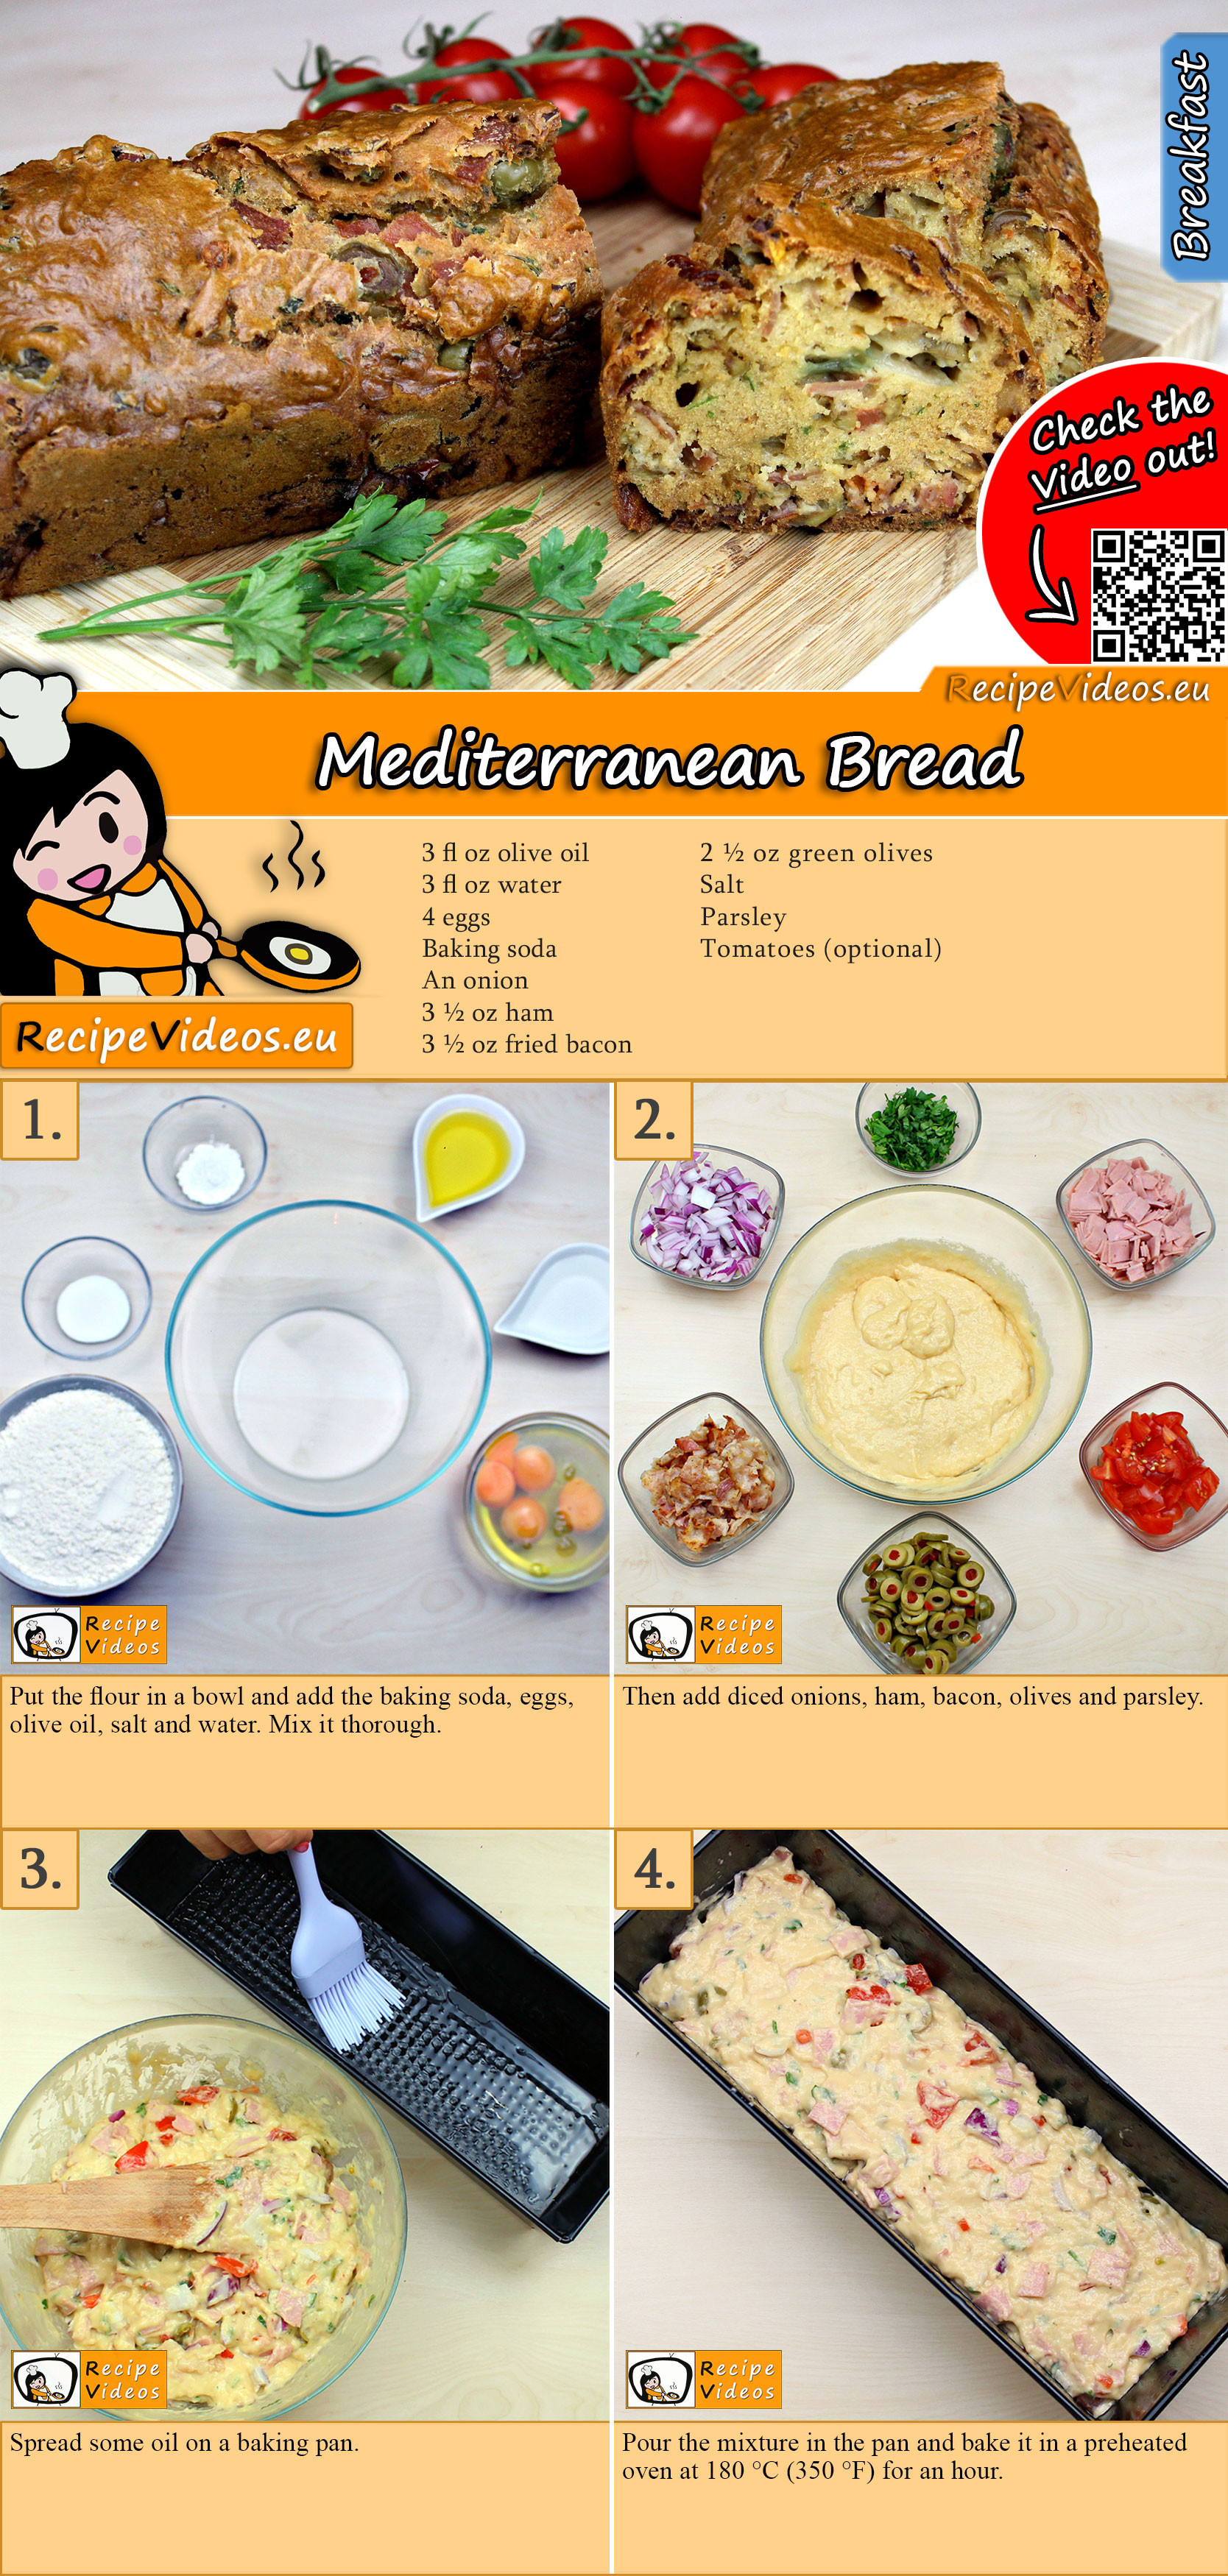 Mediterranean Bread recipe with video